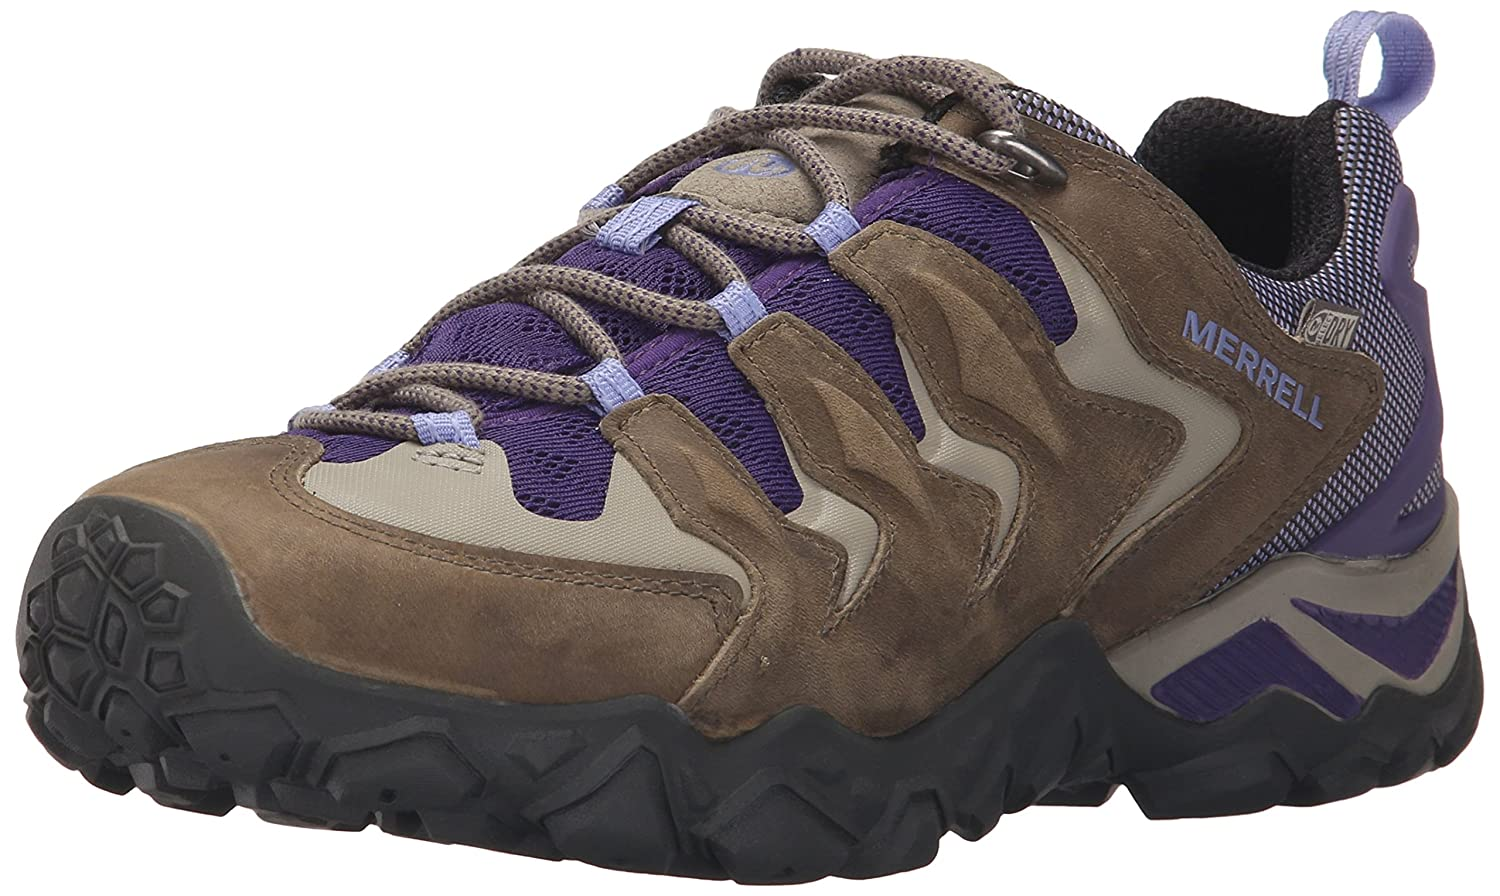 8d140258 Merrell Chameleon Shift Ventilator Gore-Tex, Women's Lace-Up Trekking and  Hiking Shoes: Amazon.co.uk: Shoes & Bags